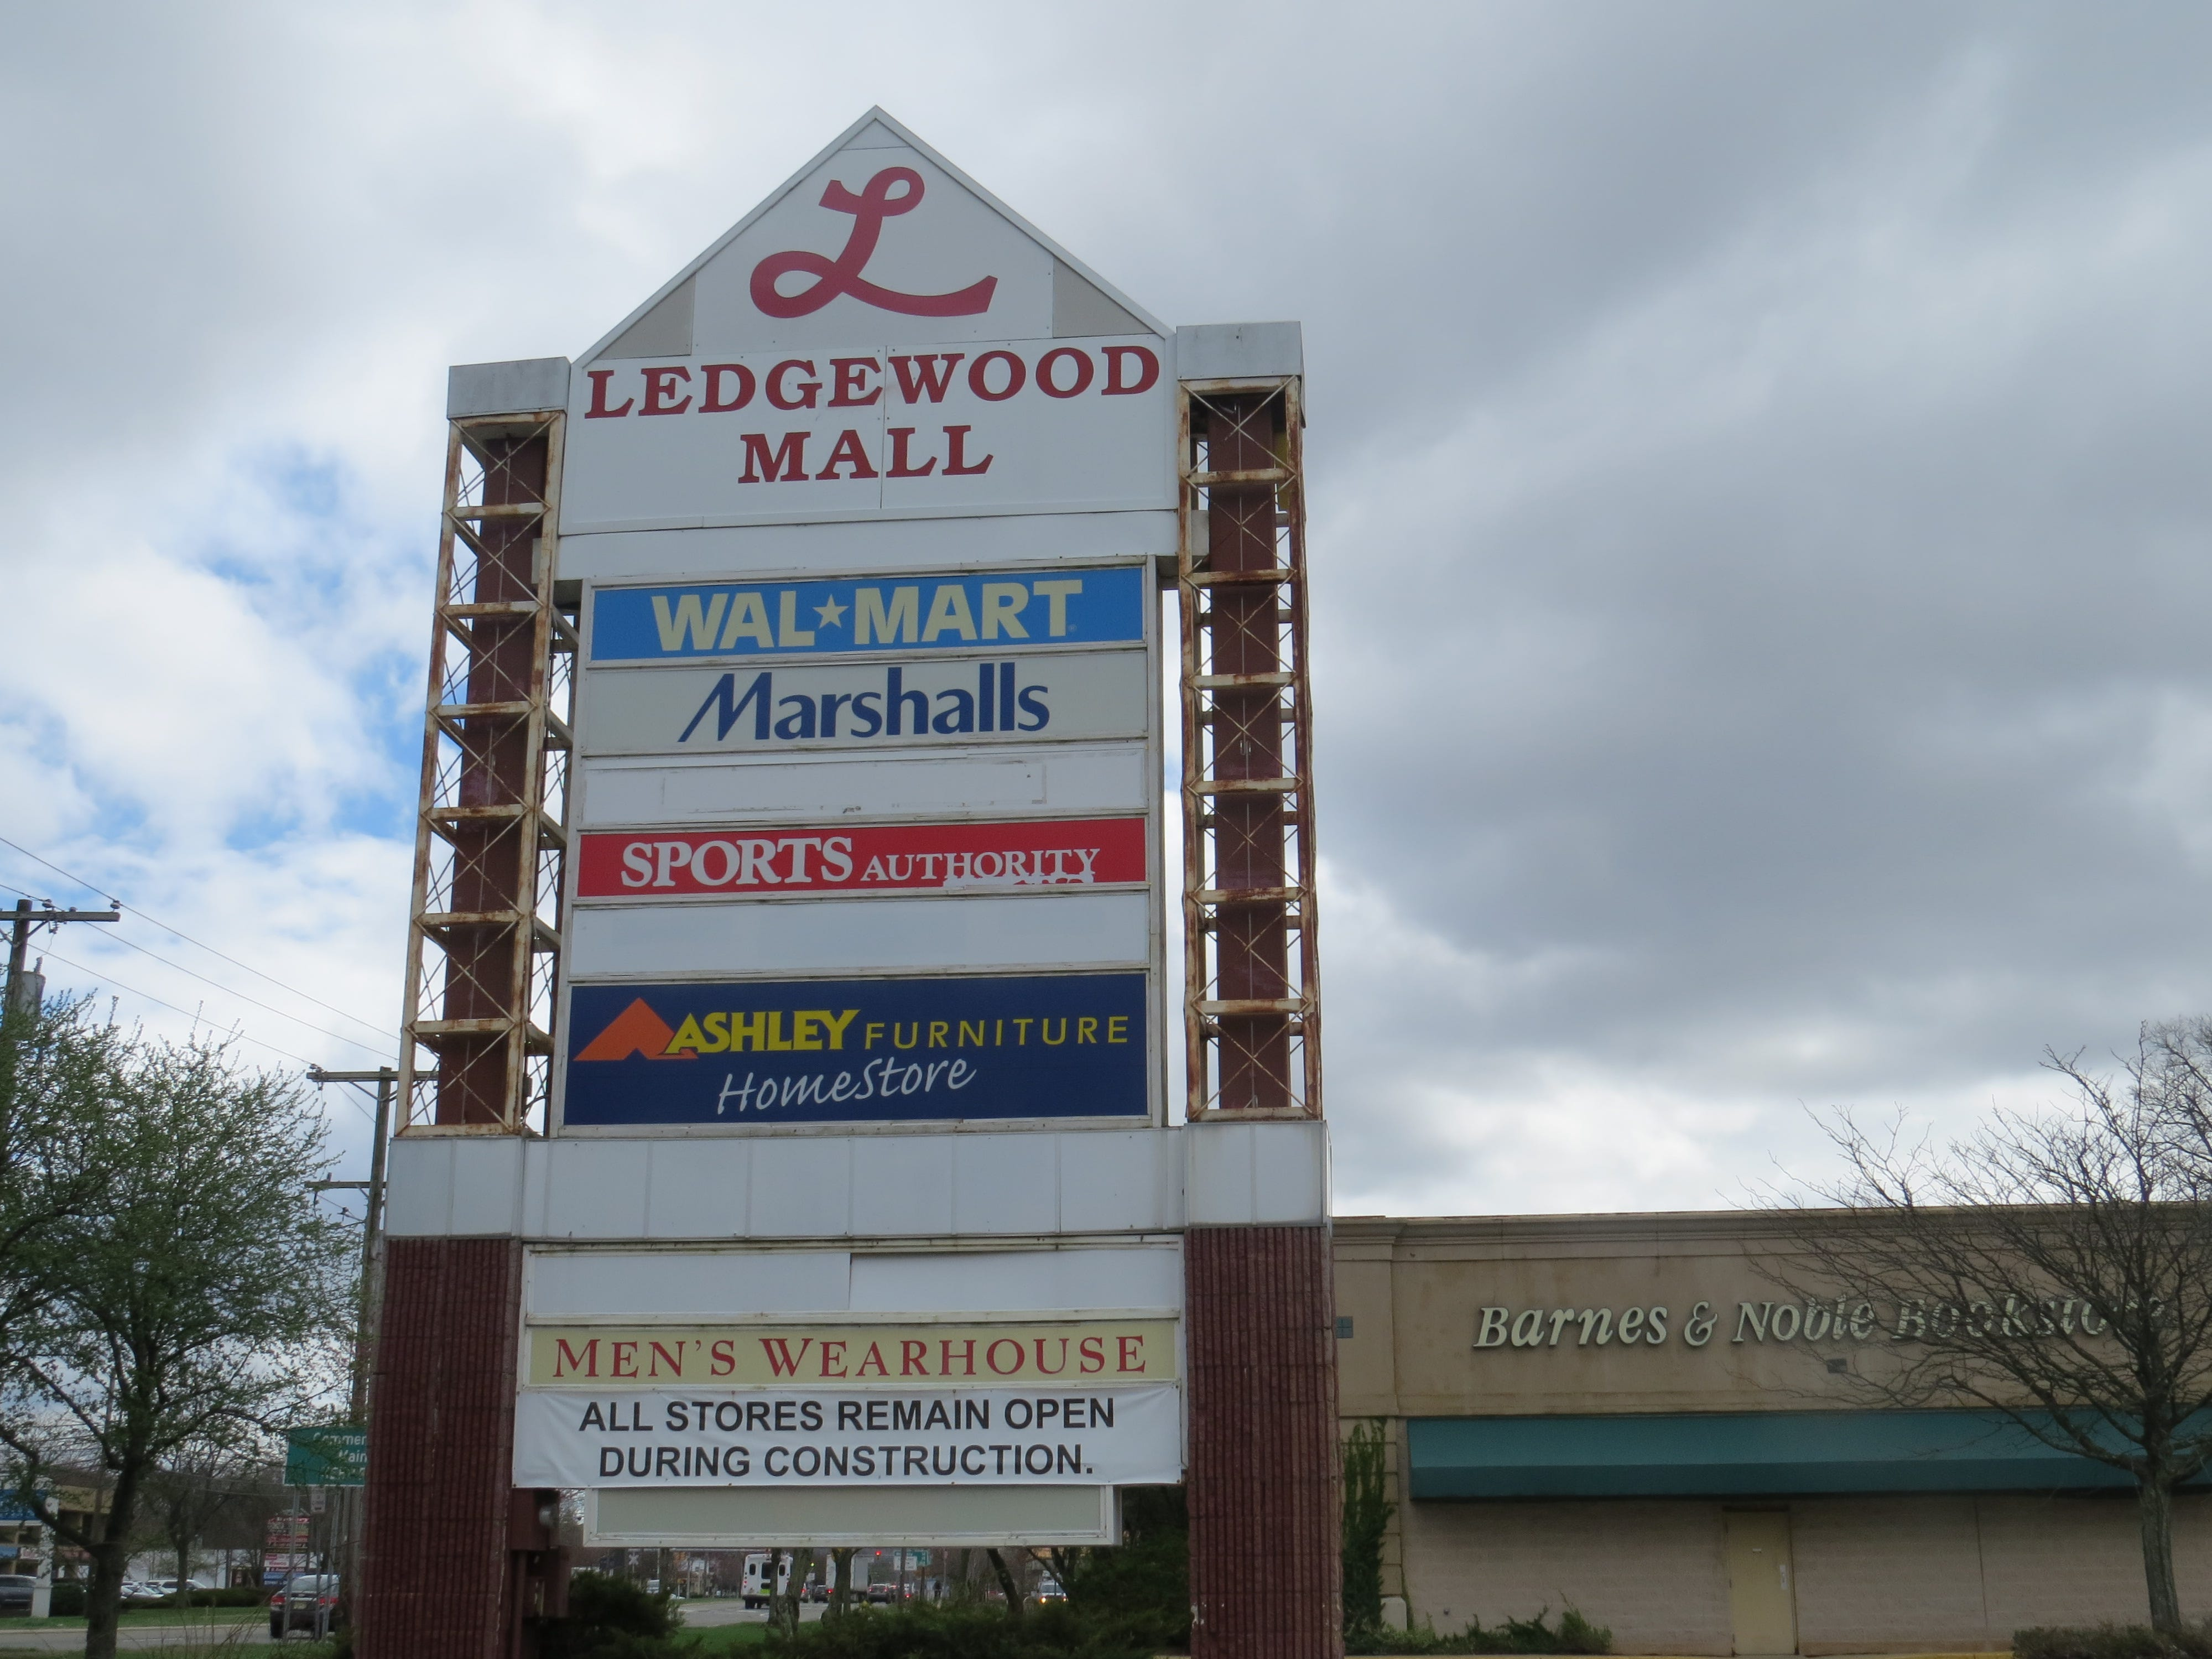 The Ledgewood Mall in Roxbury April 16, 2019. Walmart announced it will demolish the store in June and replace it with a larger supercenter, slated to open in 2020. After that, only Ashley Furniture, Men's Warehouse and Marshall's will remain open. Sports Authority closed years ago.